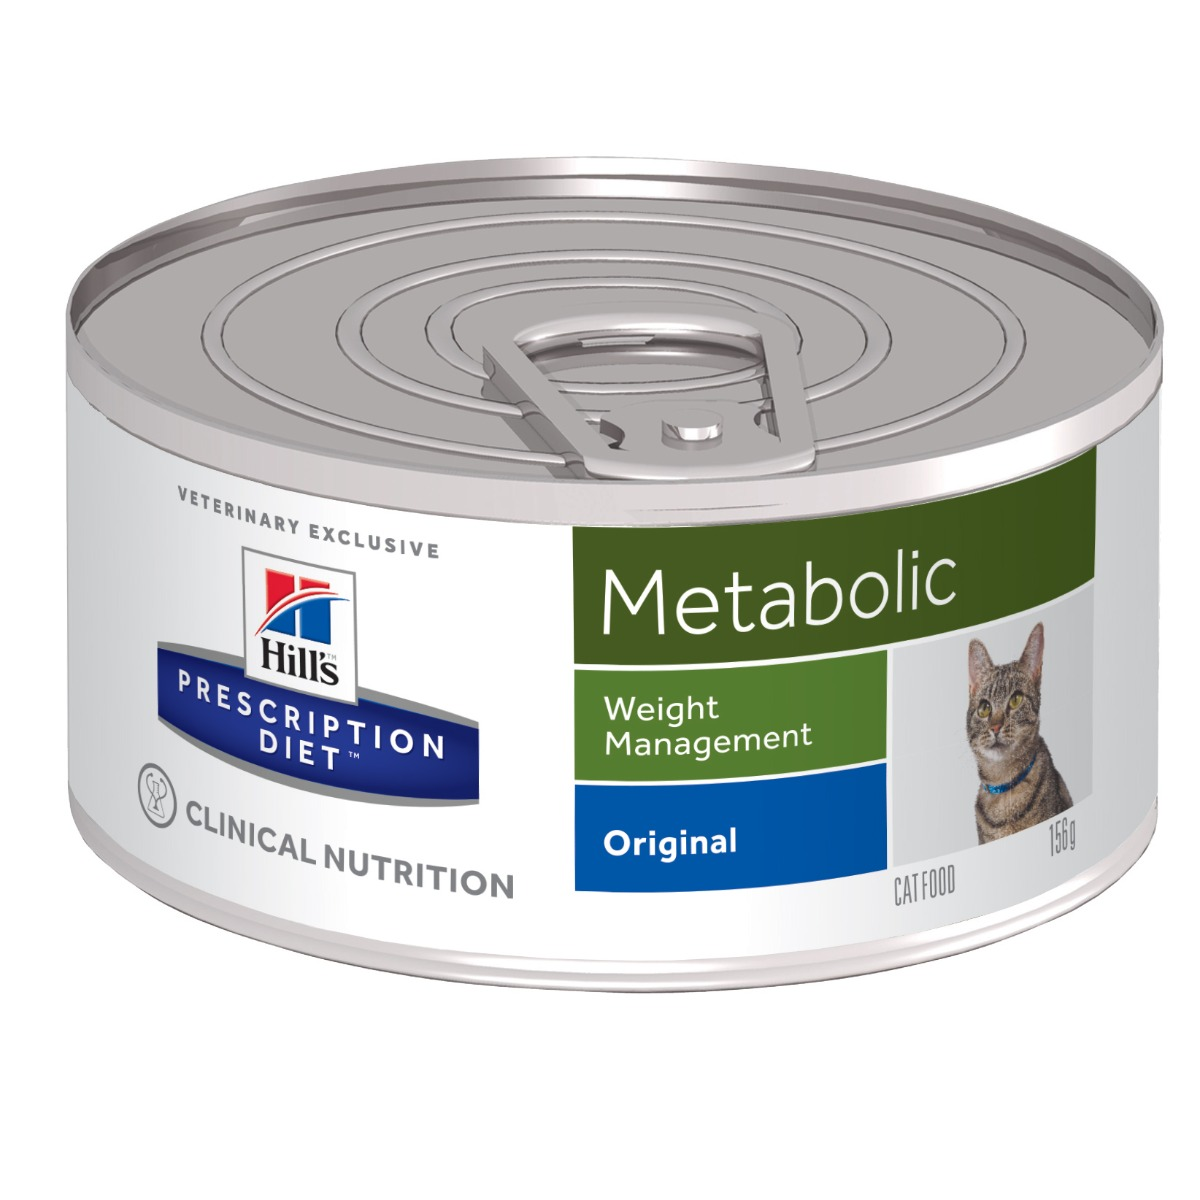 Hills Prescription Diet Metabolic - Weight Management Cat Food Wet 24x156g Can on Animed Direct